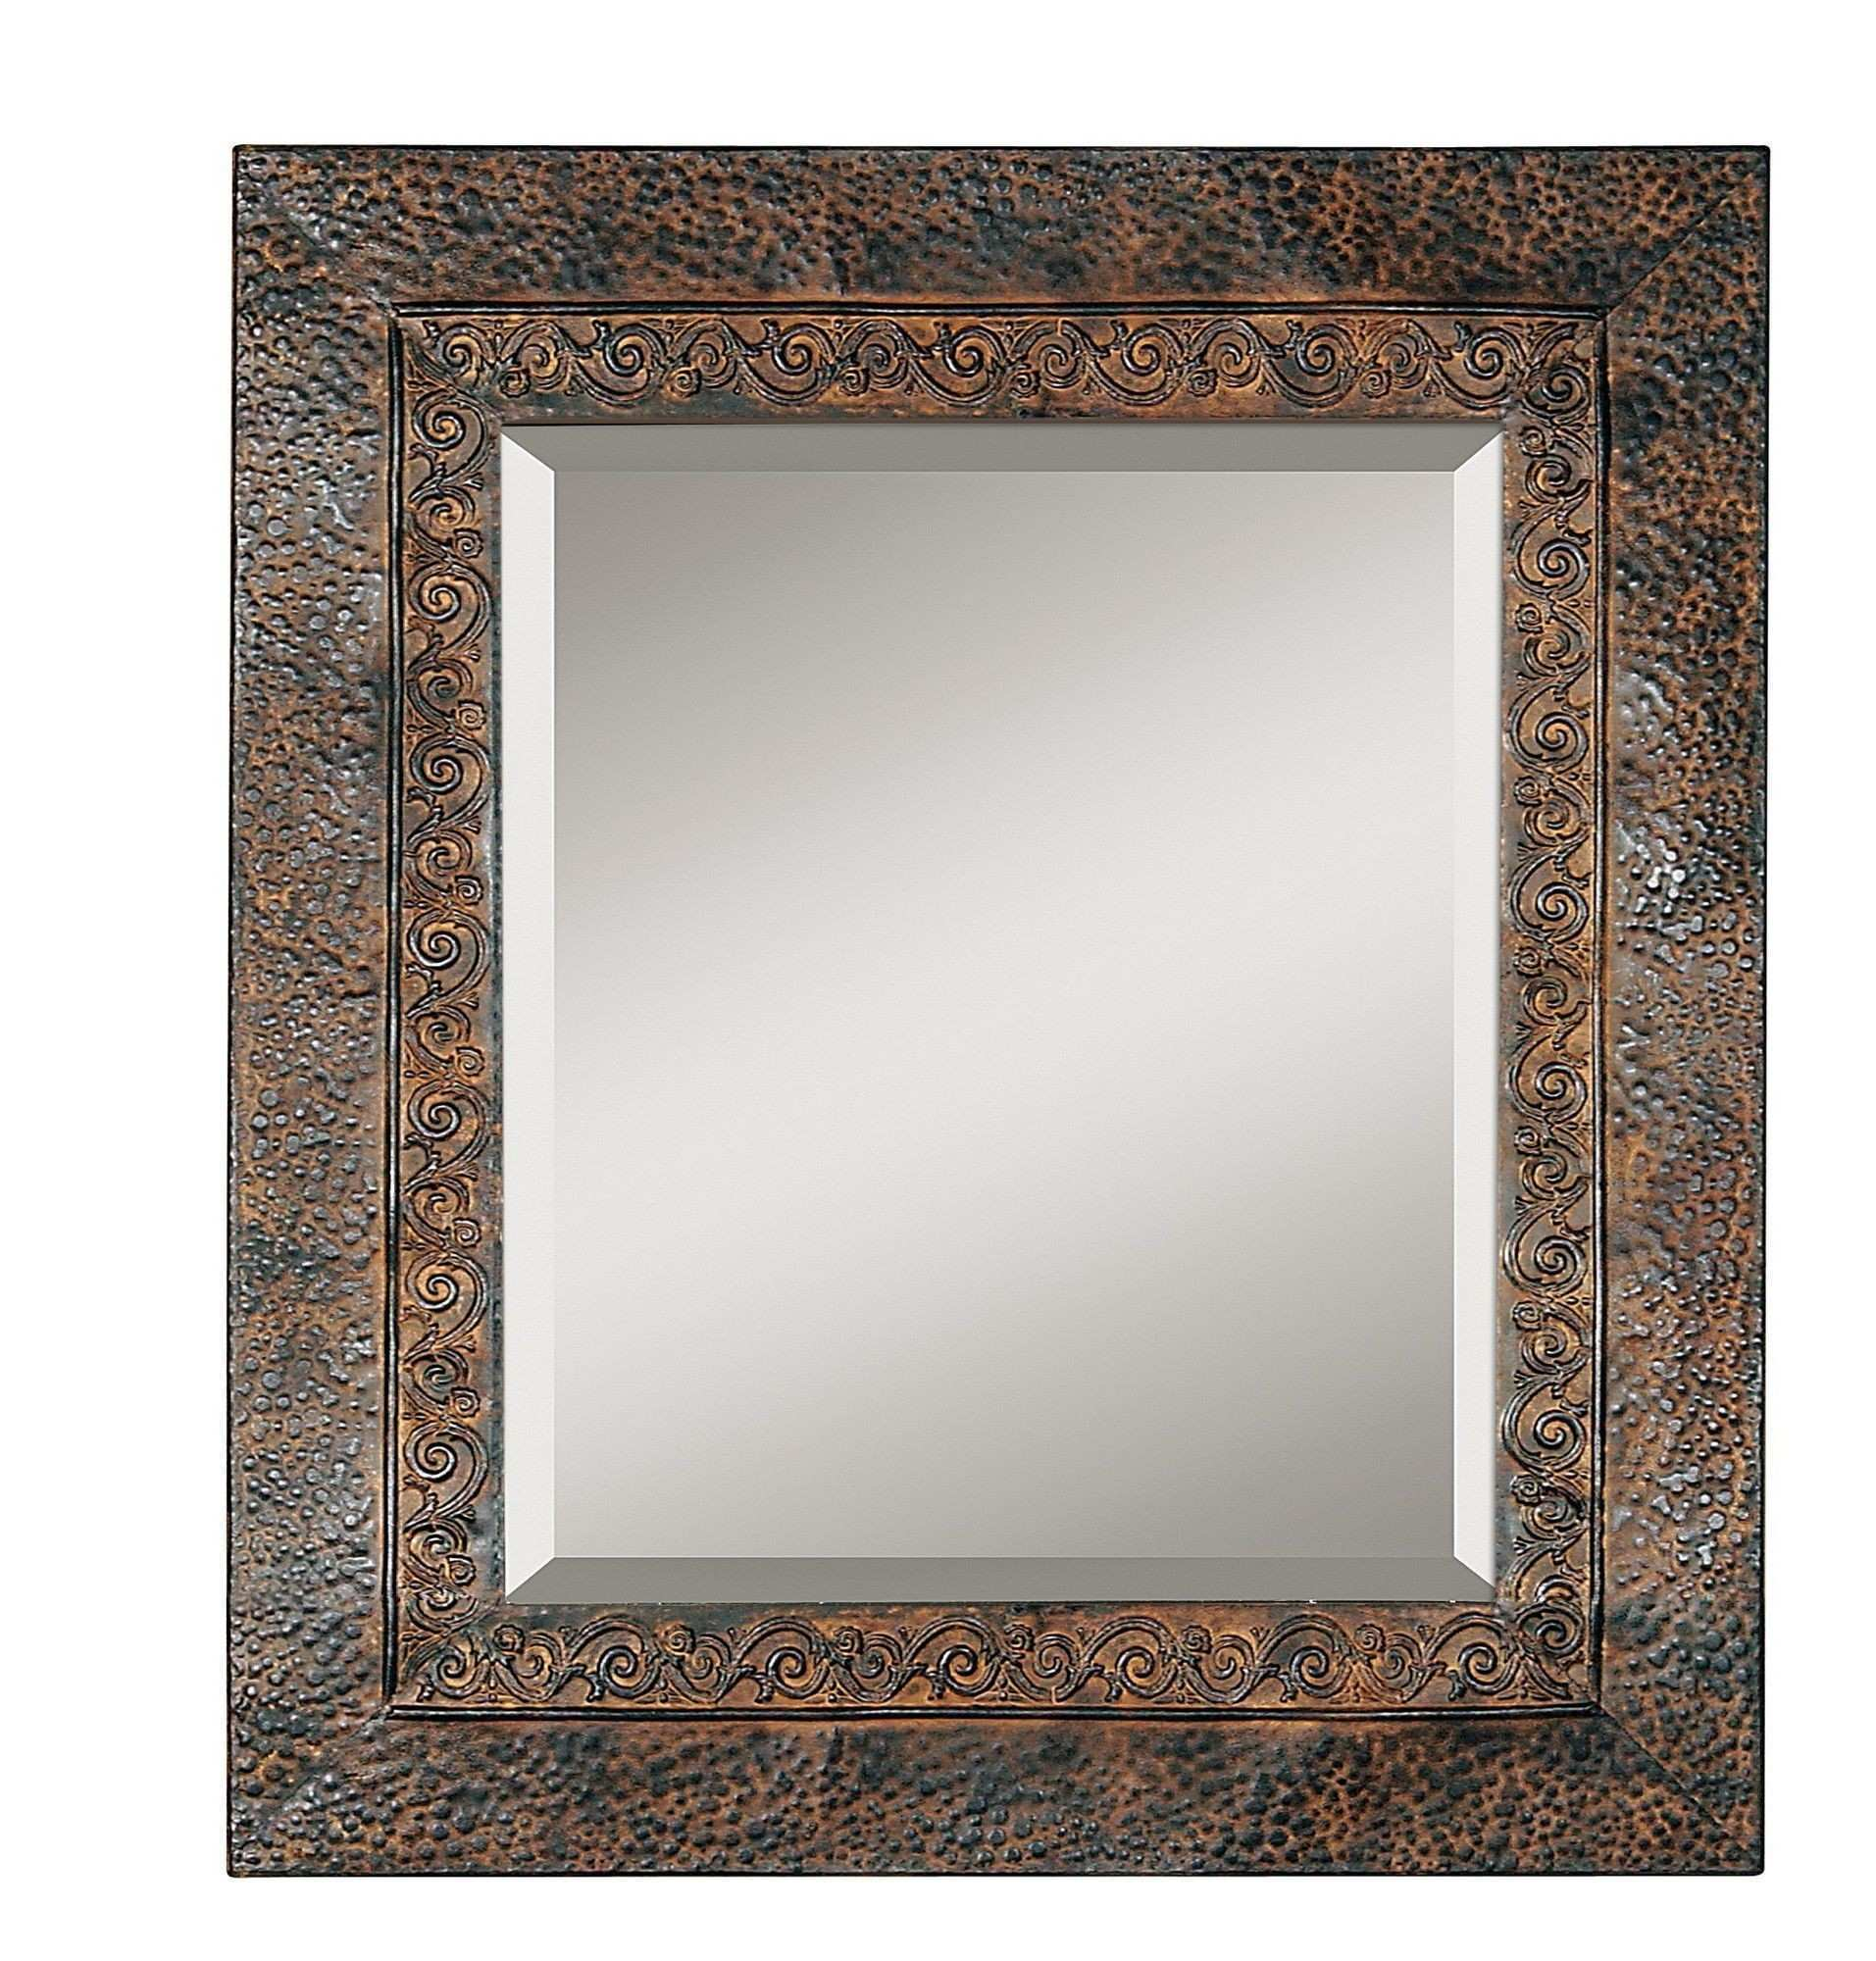 Rustic Square Metal Frame Mirror Jpg C h Home Design